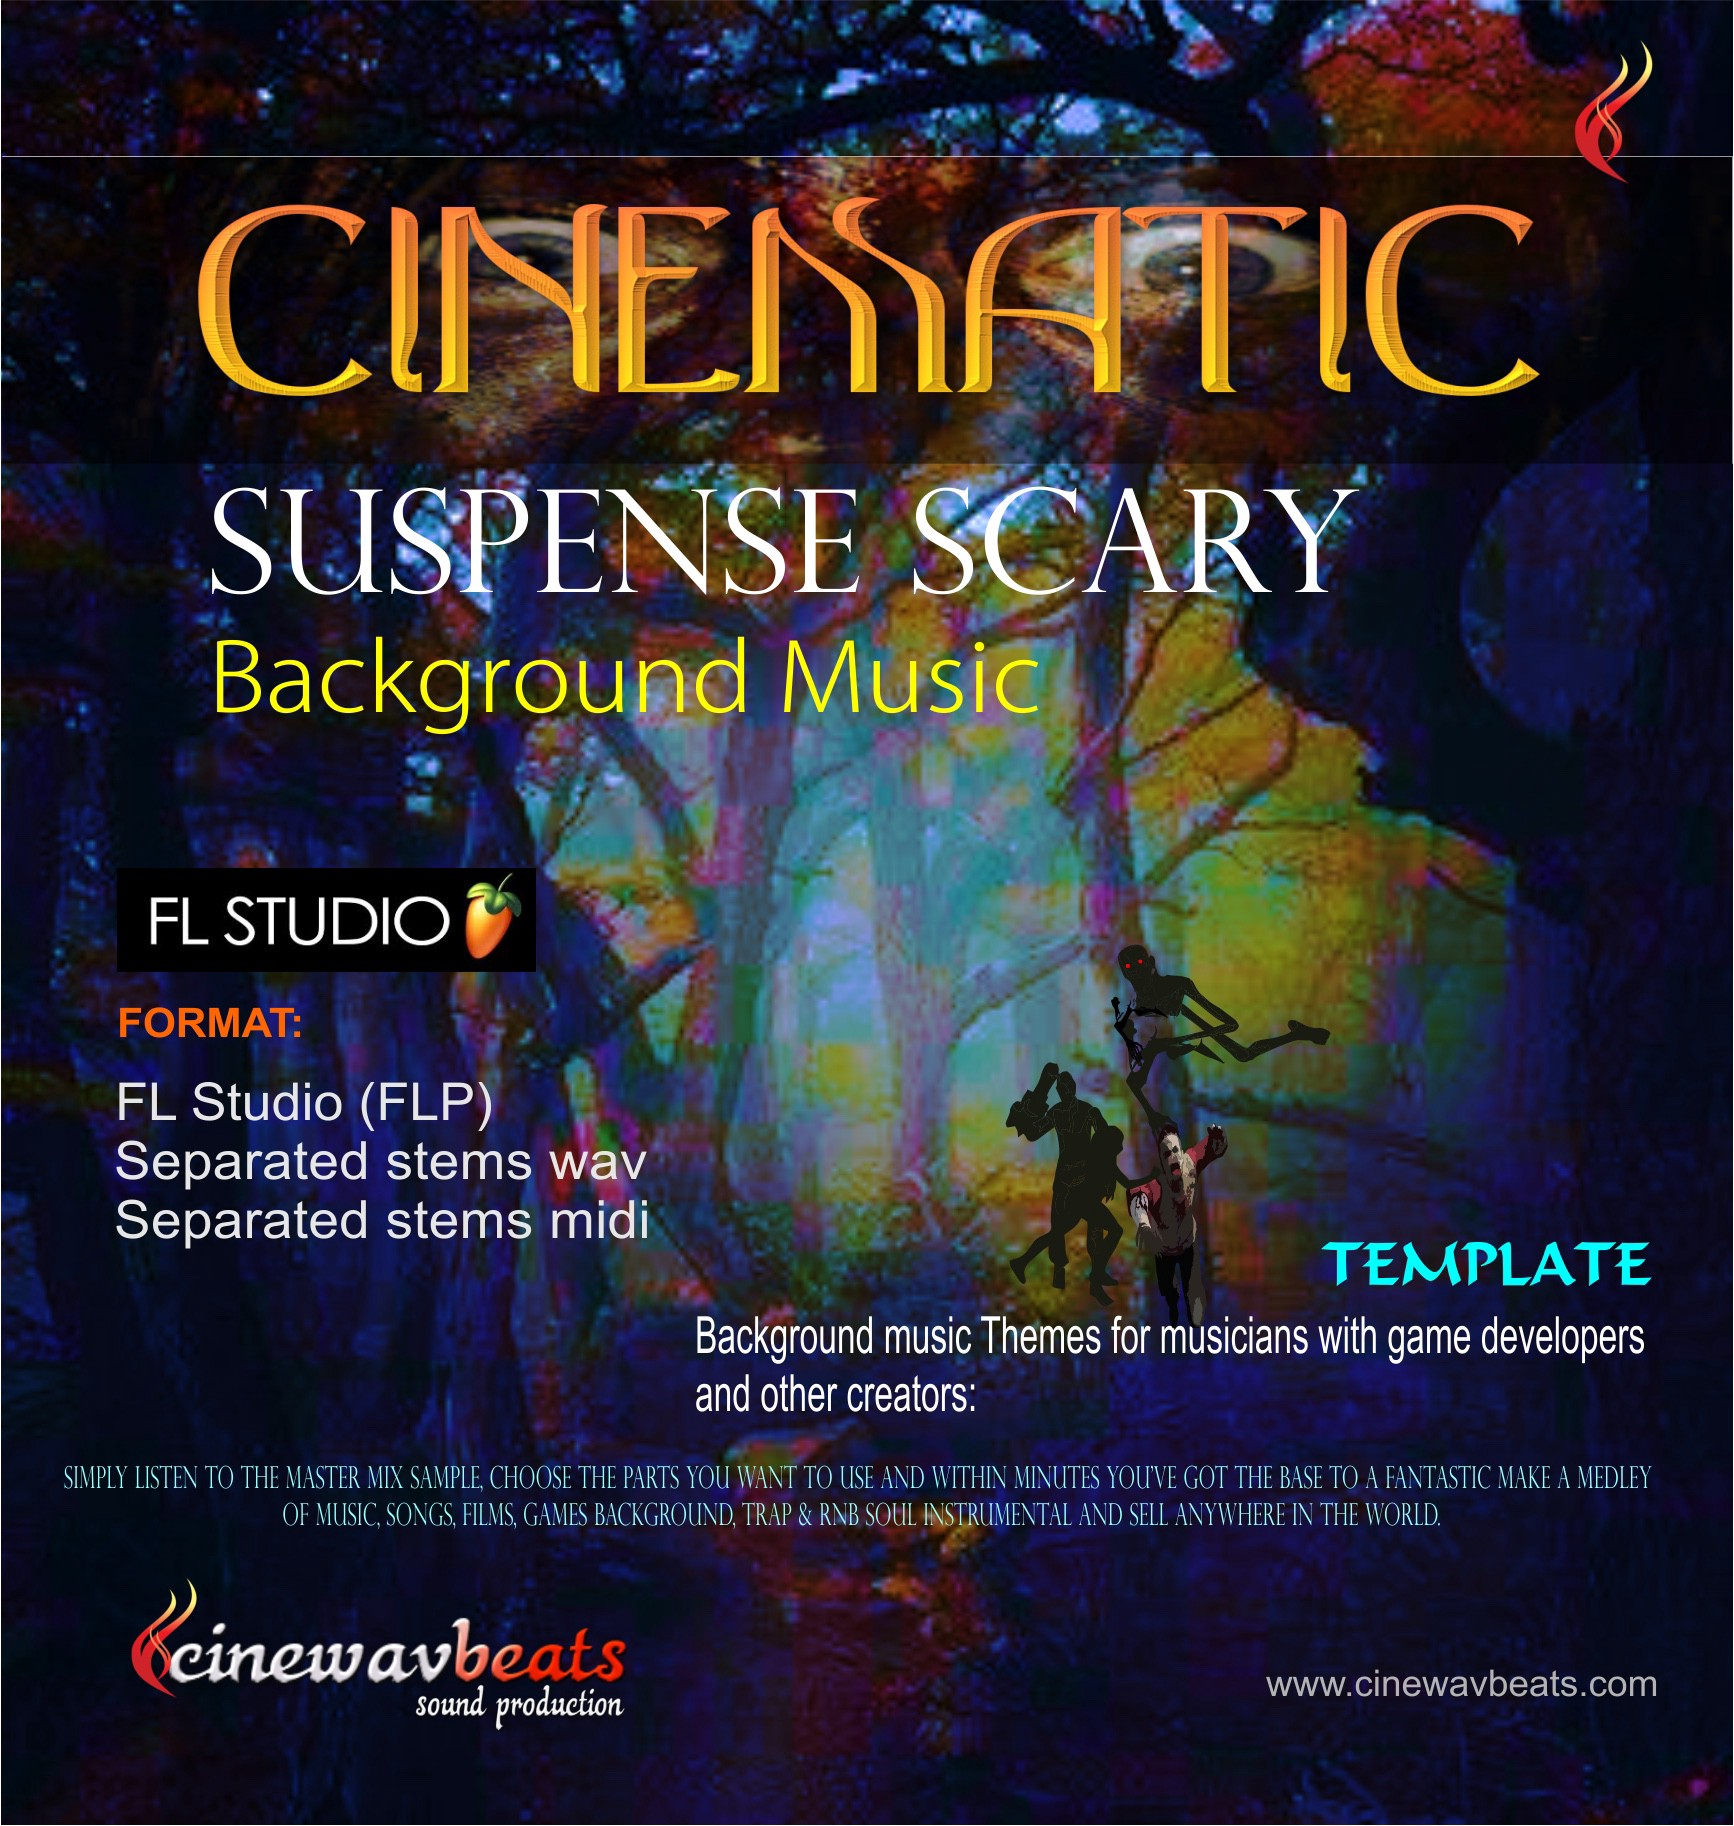 Free Download Cinematic Scary Suspence Background Music By Best Deal Online Usa Medium